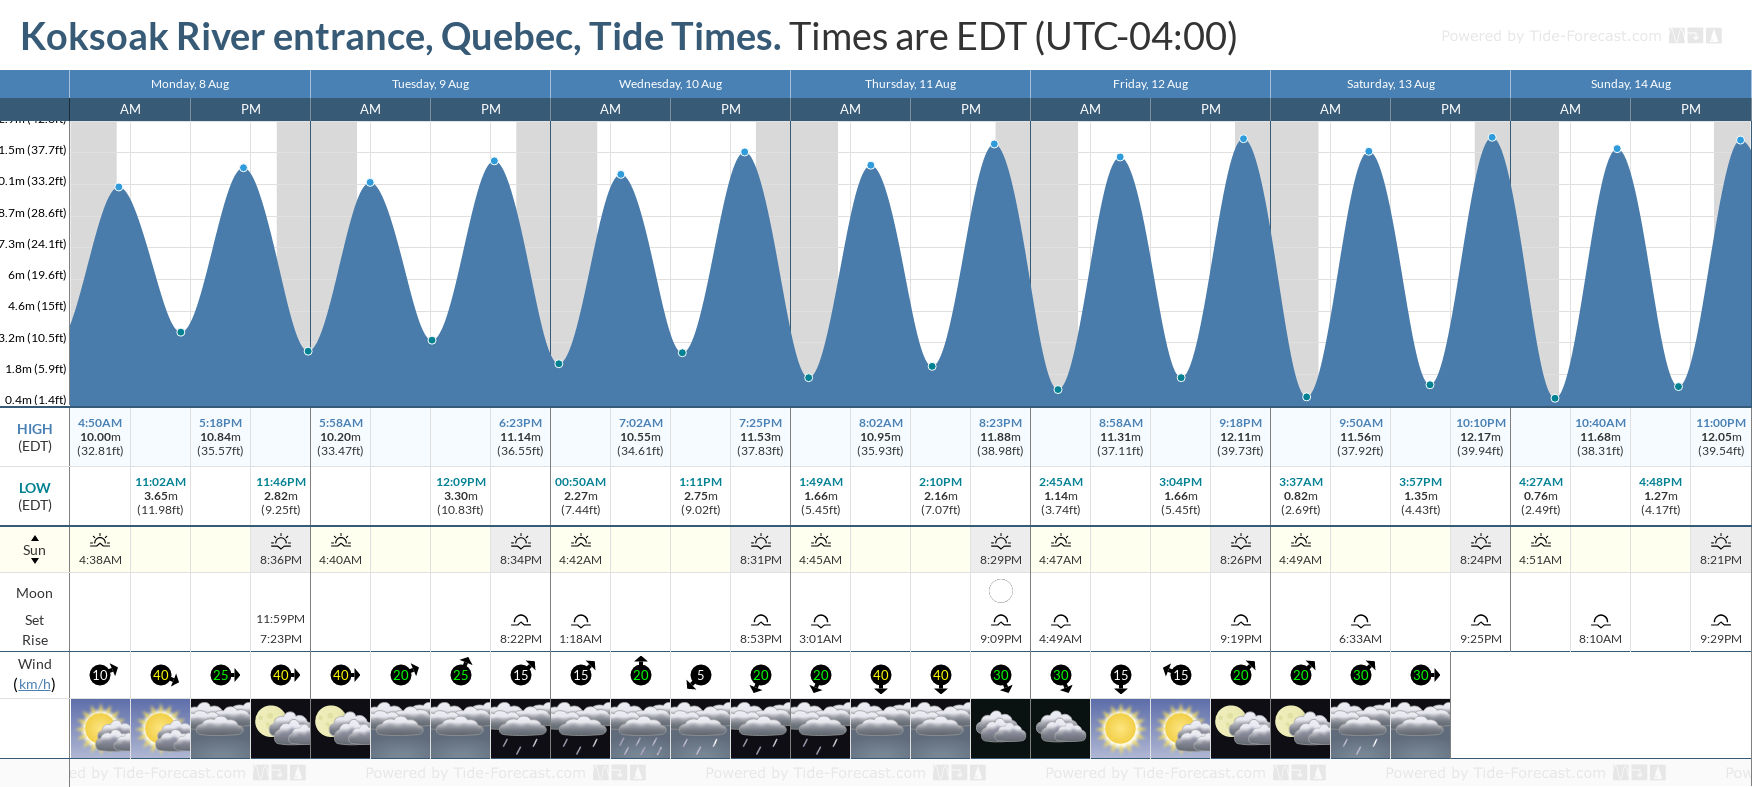 Koksoak River entrance, Quebec Tide Chart including high and low tide tide times for the next 7 days